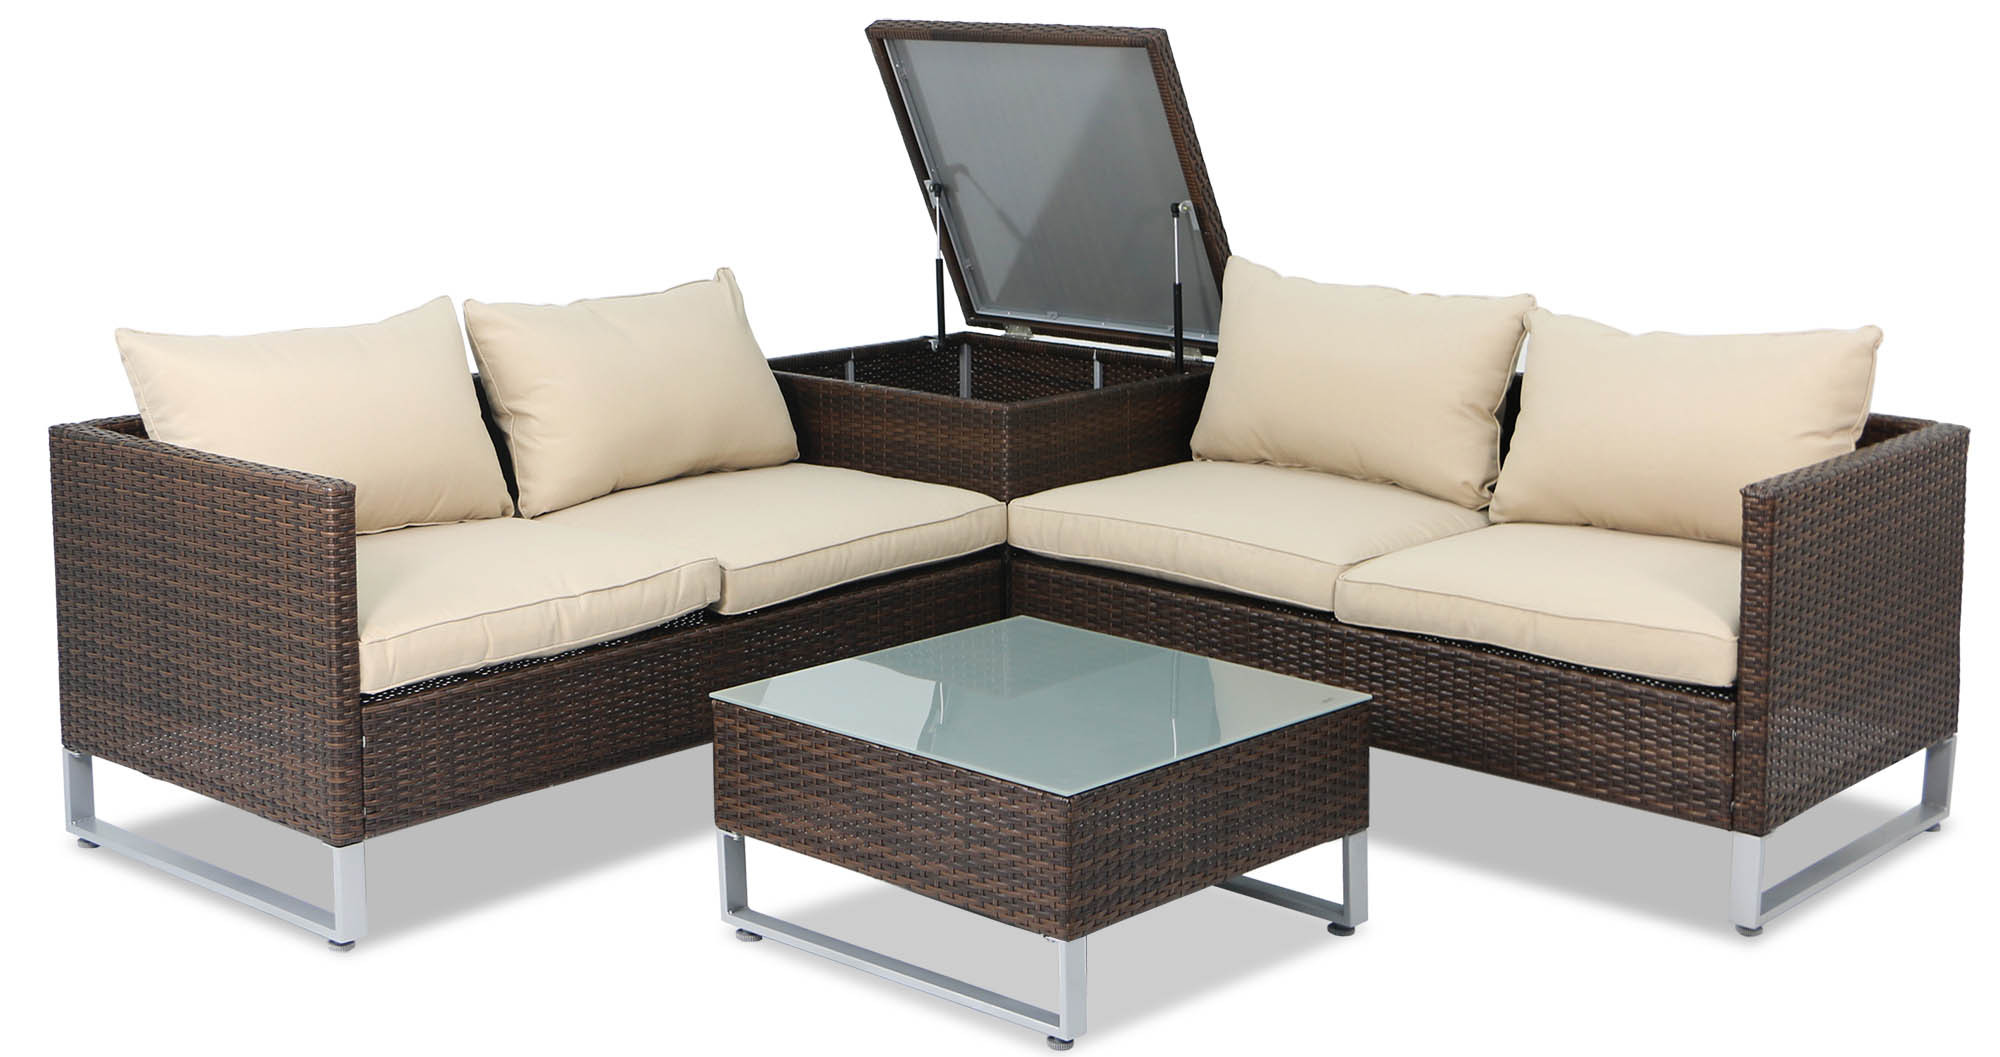 Rattan Sofa Set With Storage Royal Synthetic Rattan Outdoor Sofa Set With Storage Box